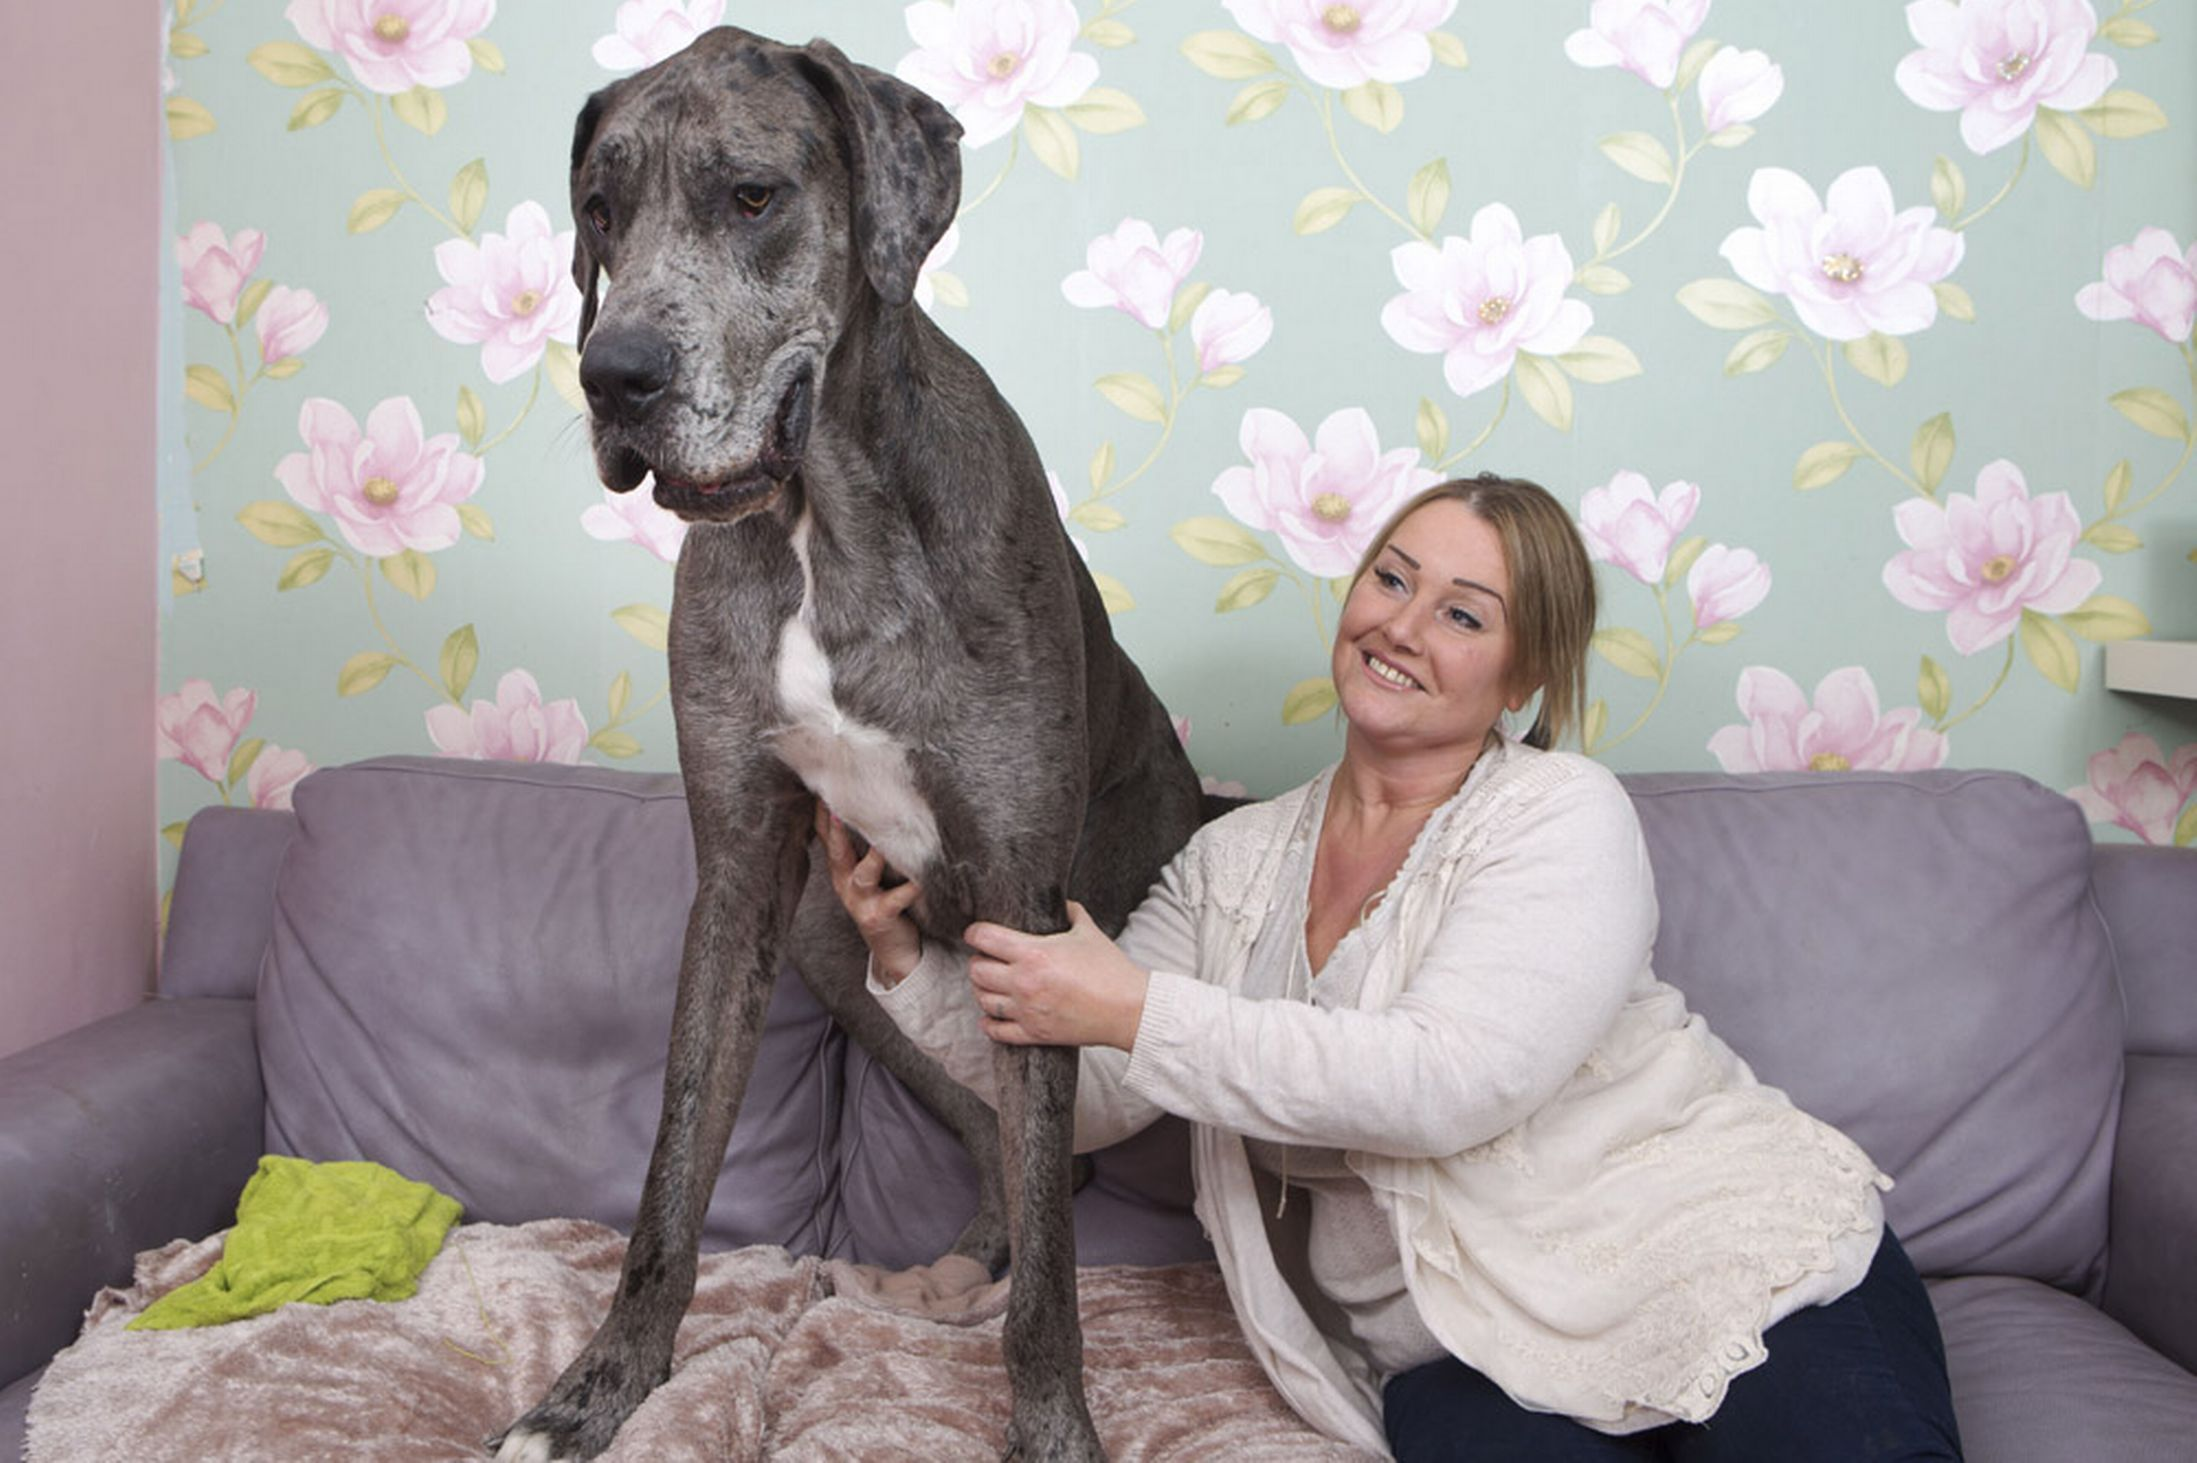 Britain S Biggest Dog Freddy The Great Dane Is Over 7ft Tall And